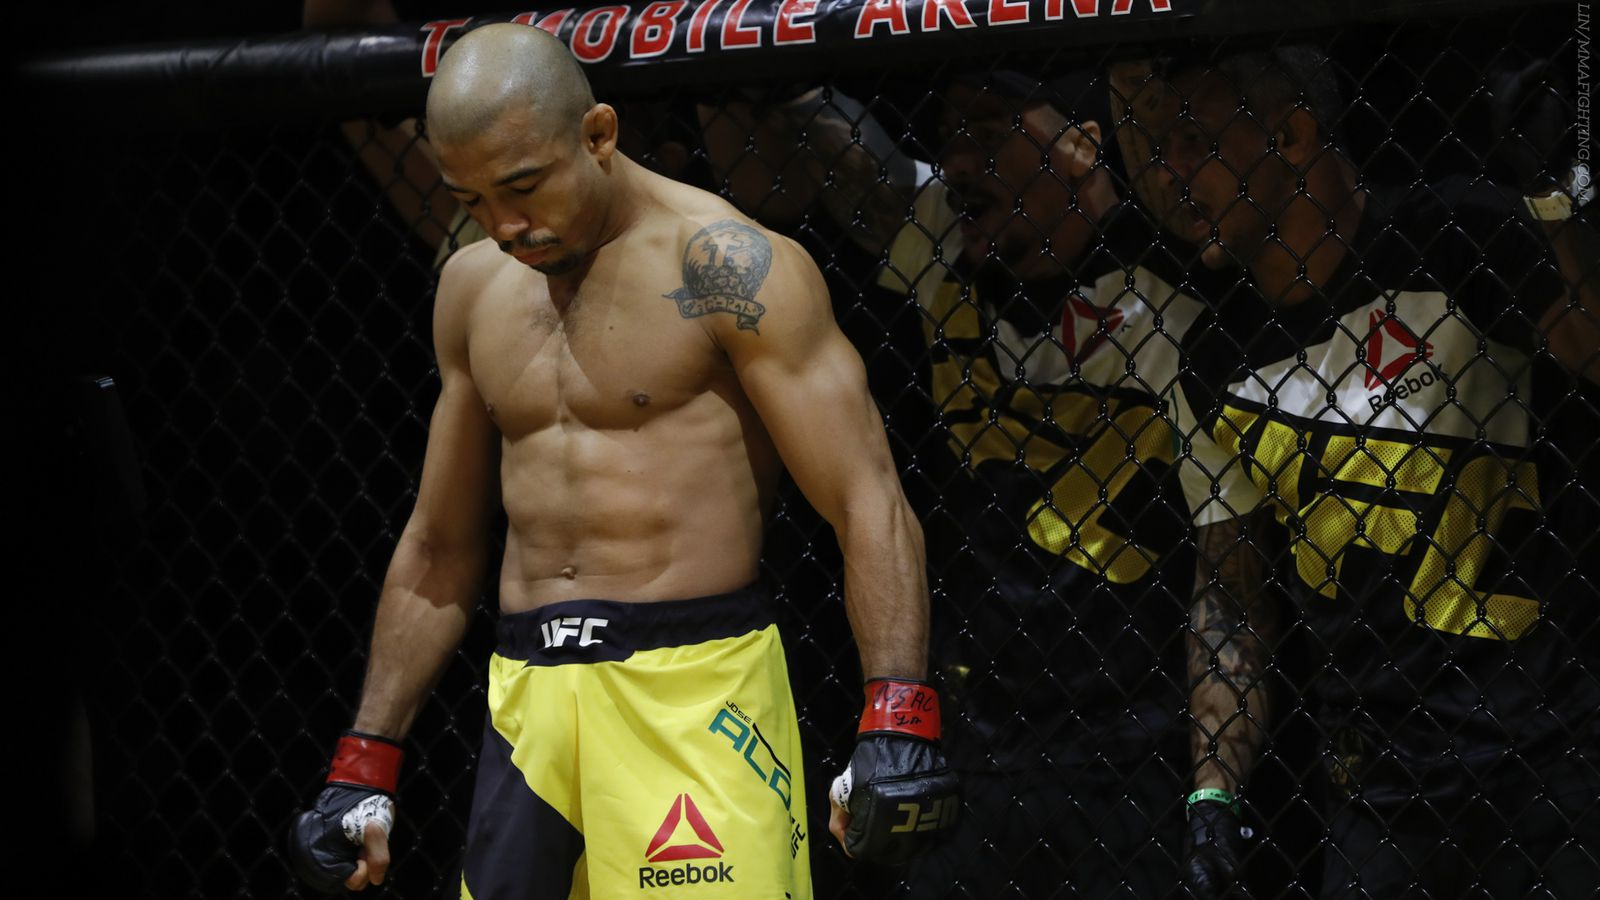 Jose Aldo says nothing's changed after meeting with Dana White, rules out lawsuit